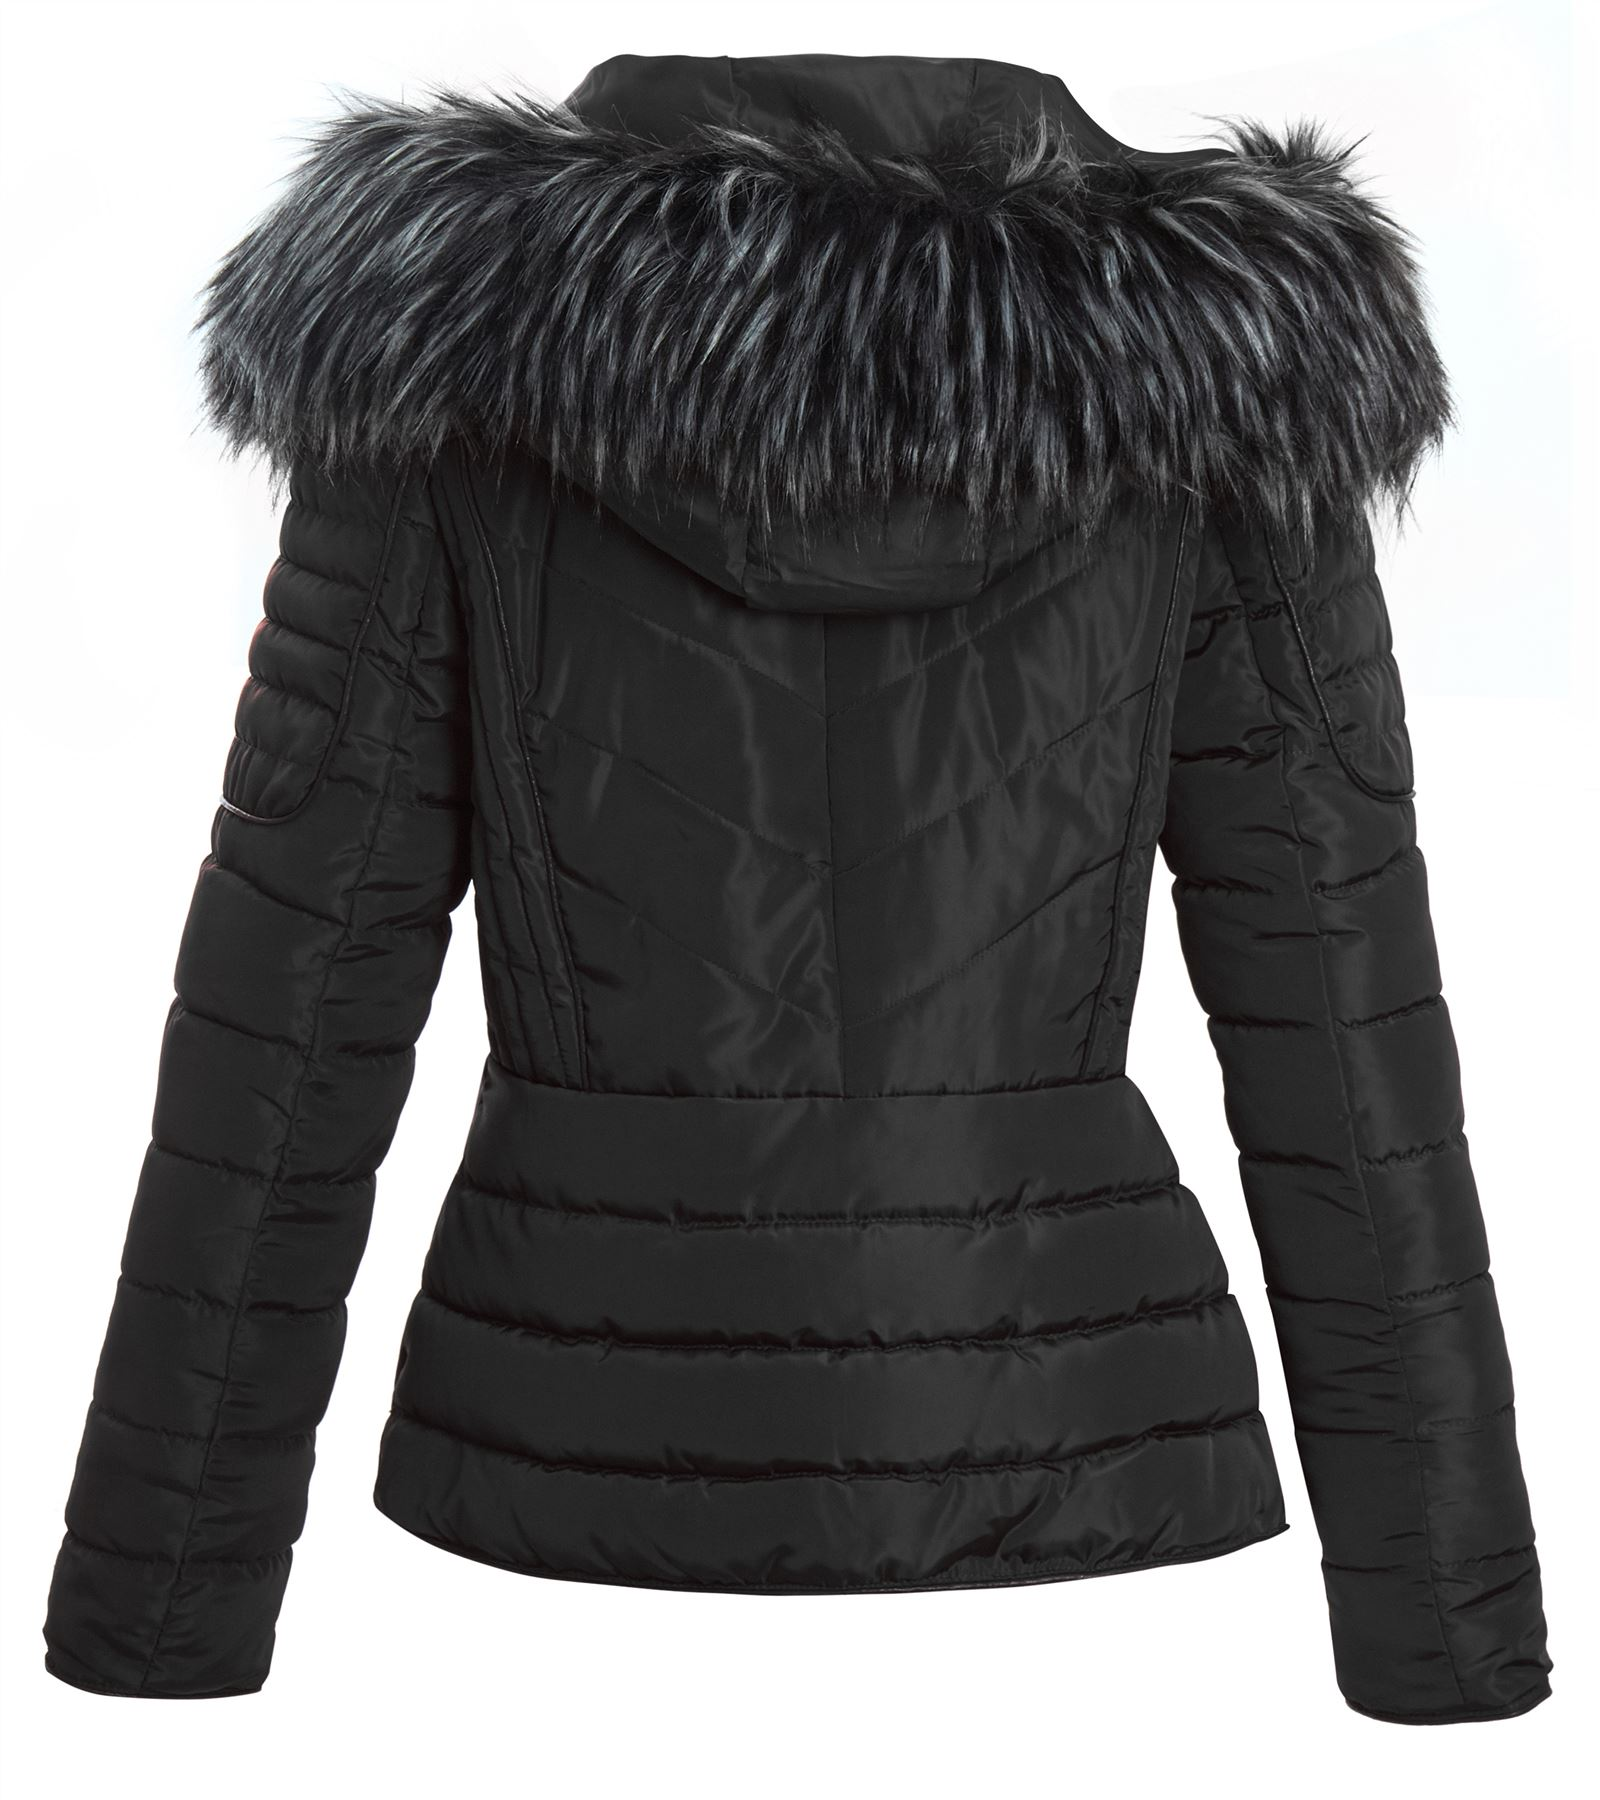 Fur Coat Jacket Quilted Hooded Dame Shelikes Faux UwqnAf